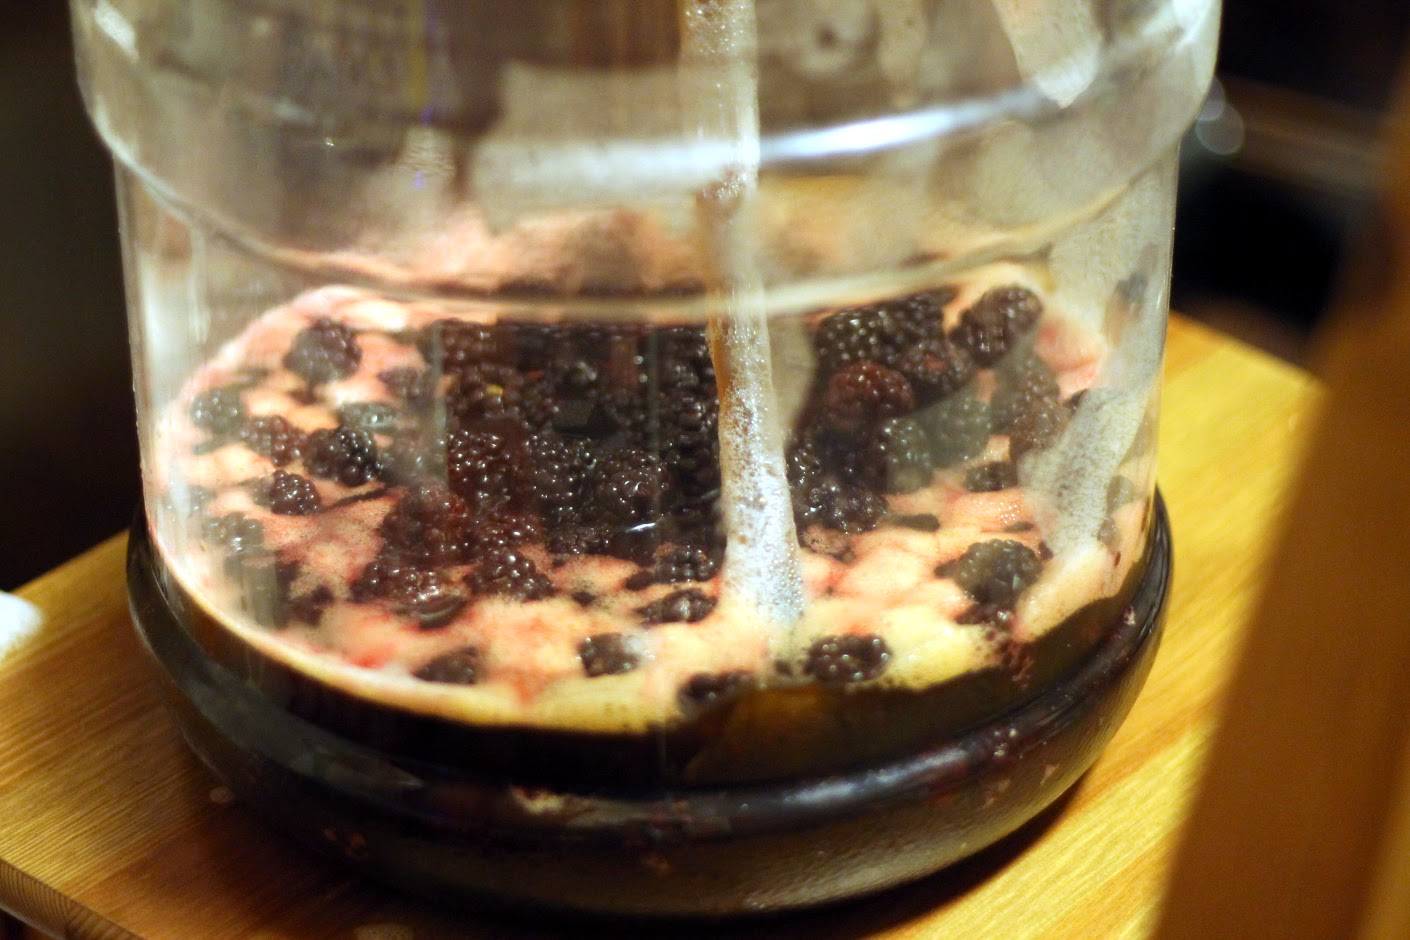 Soured stout racking onto blackberries.